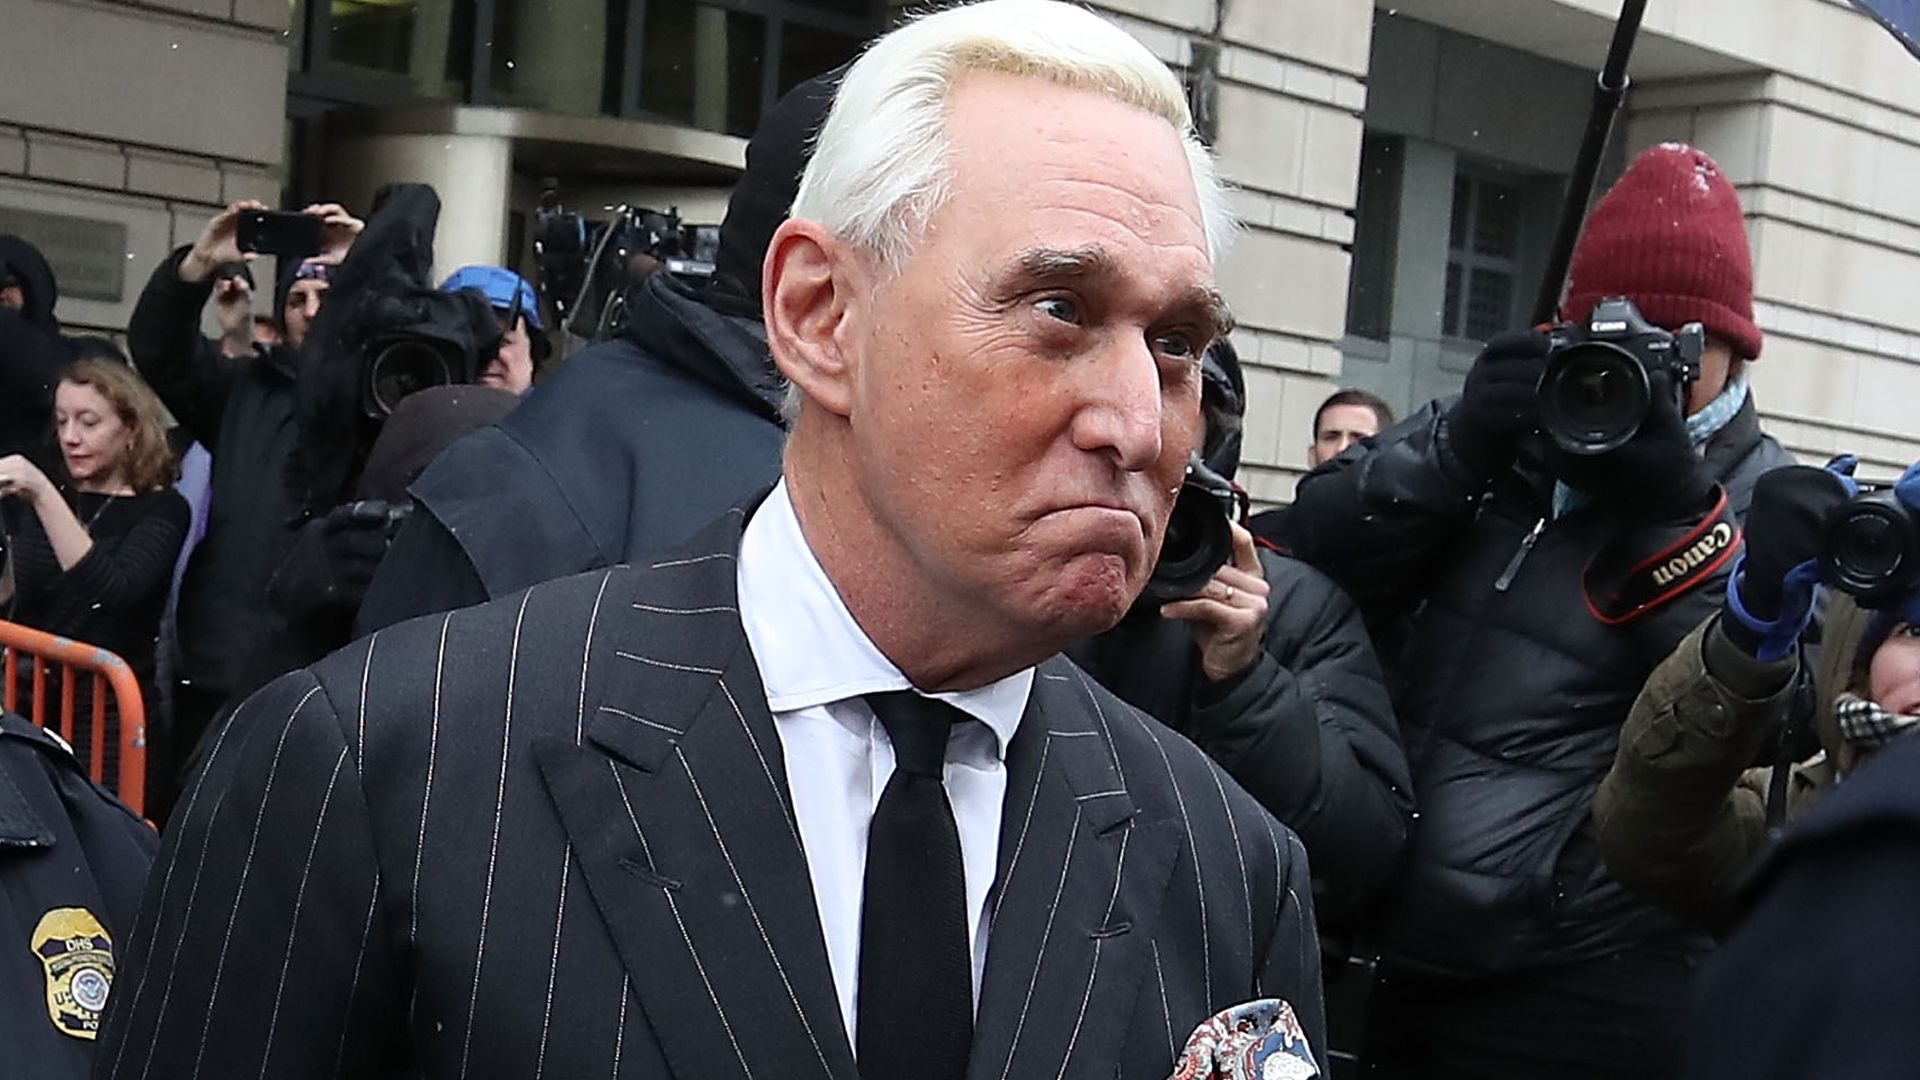 Roger Stone says his book didn't violated the gag order because it had already been published online.